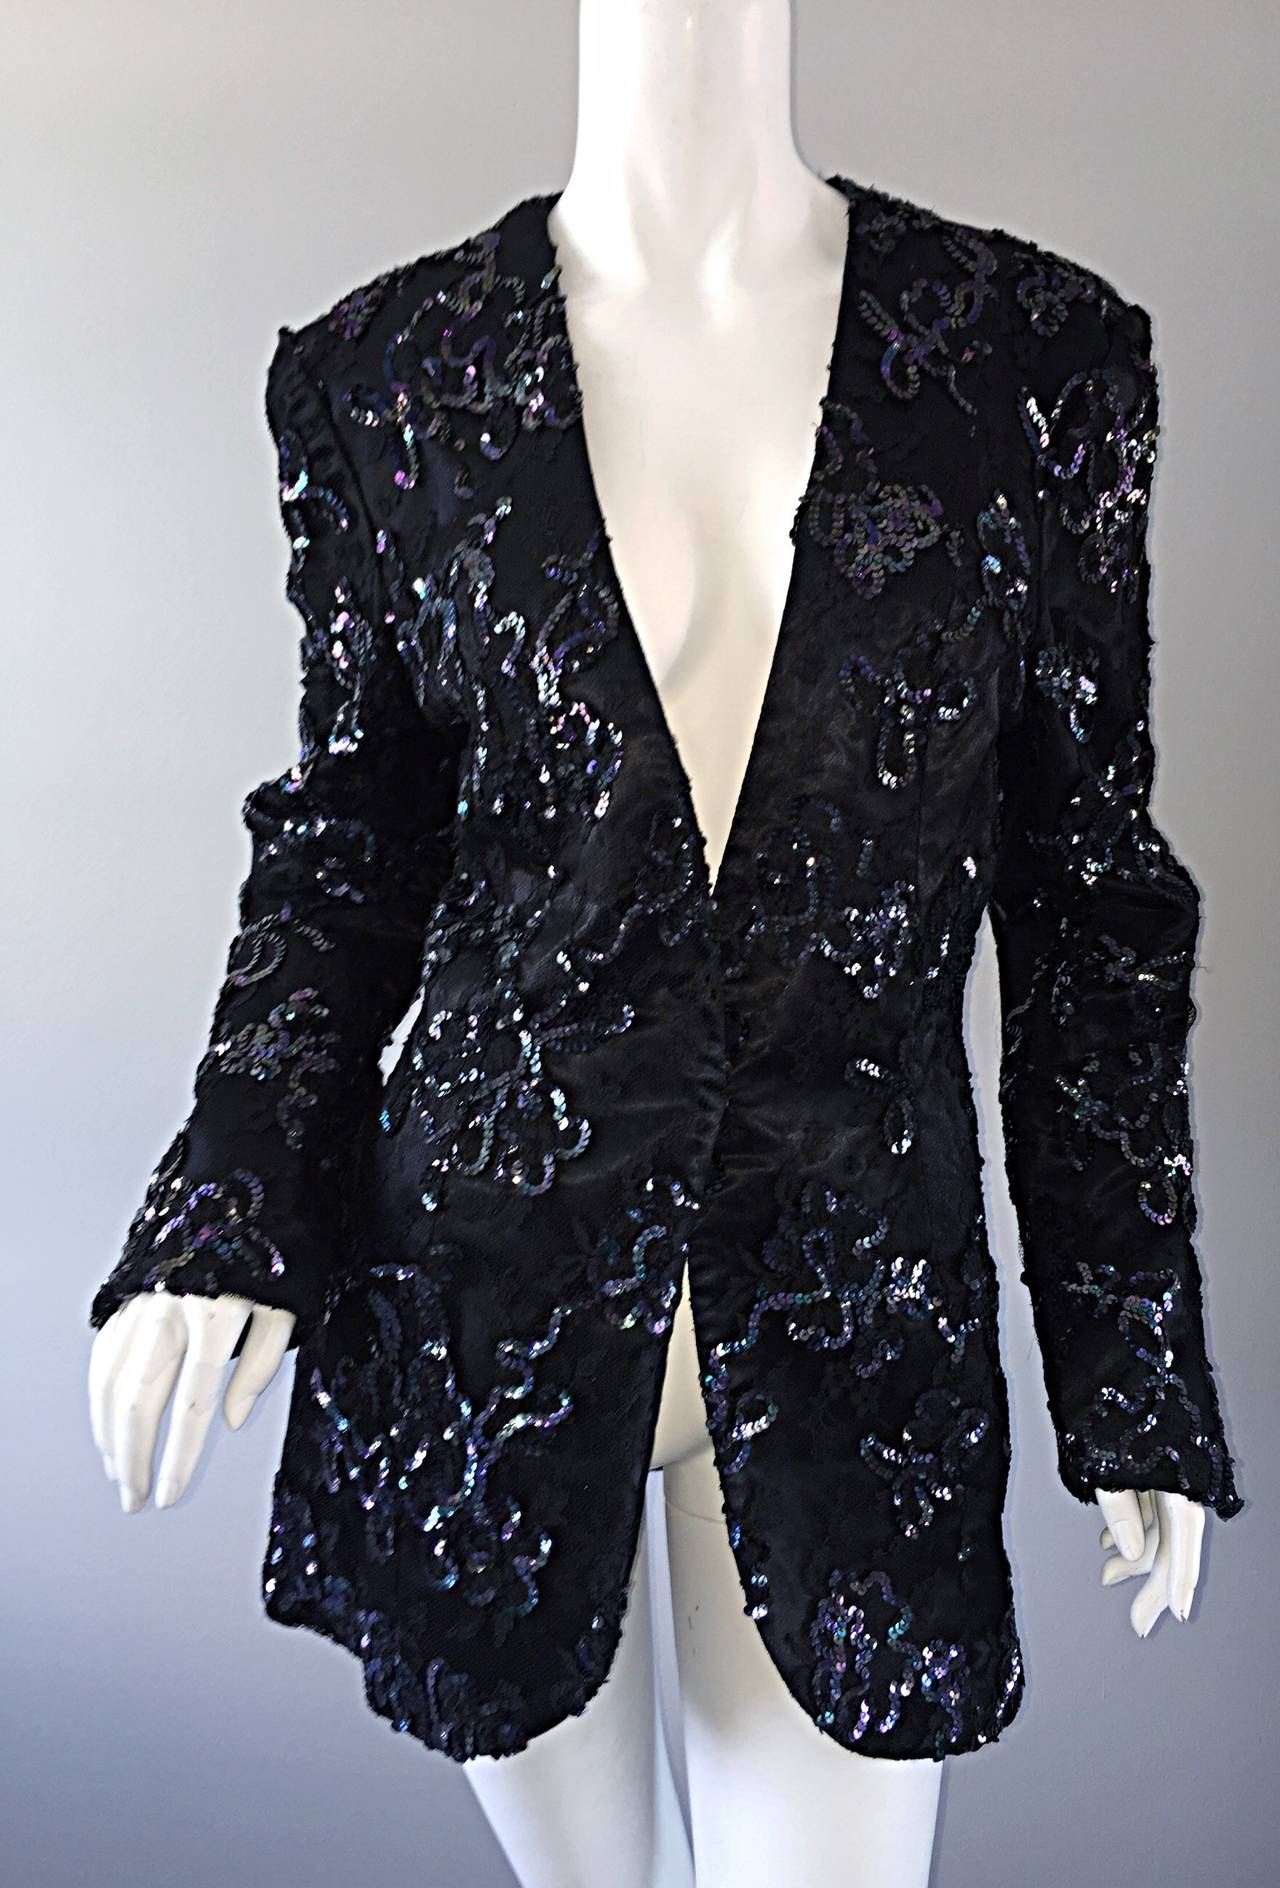 The ULTIMATE black blazer, by Joanna Mastroianni! Black silk, with black french lace overlay, adorned with iridescent sequins throughout. Looks great with denim, trousers, a skirt, or simply over a dress. Single hook-and-eye closure at waist. Fully